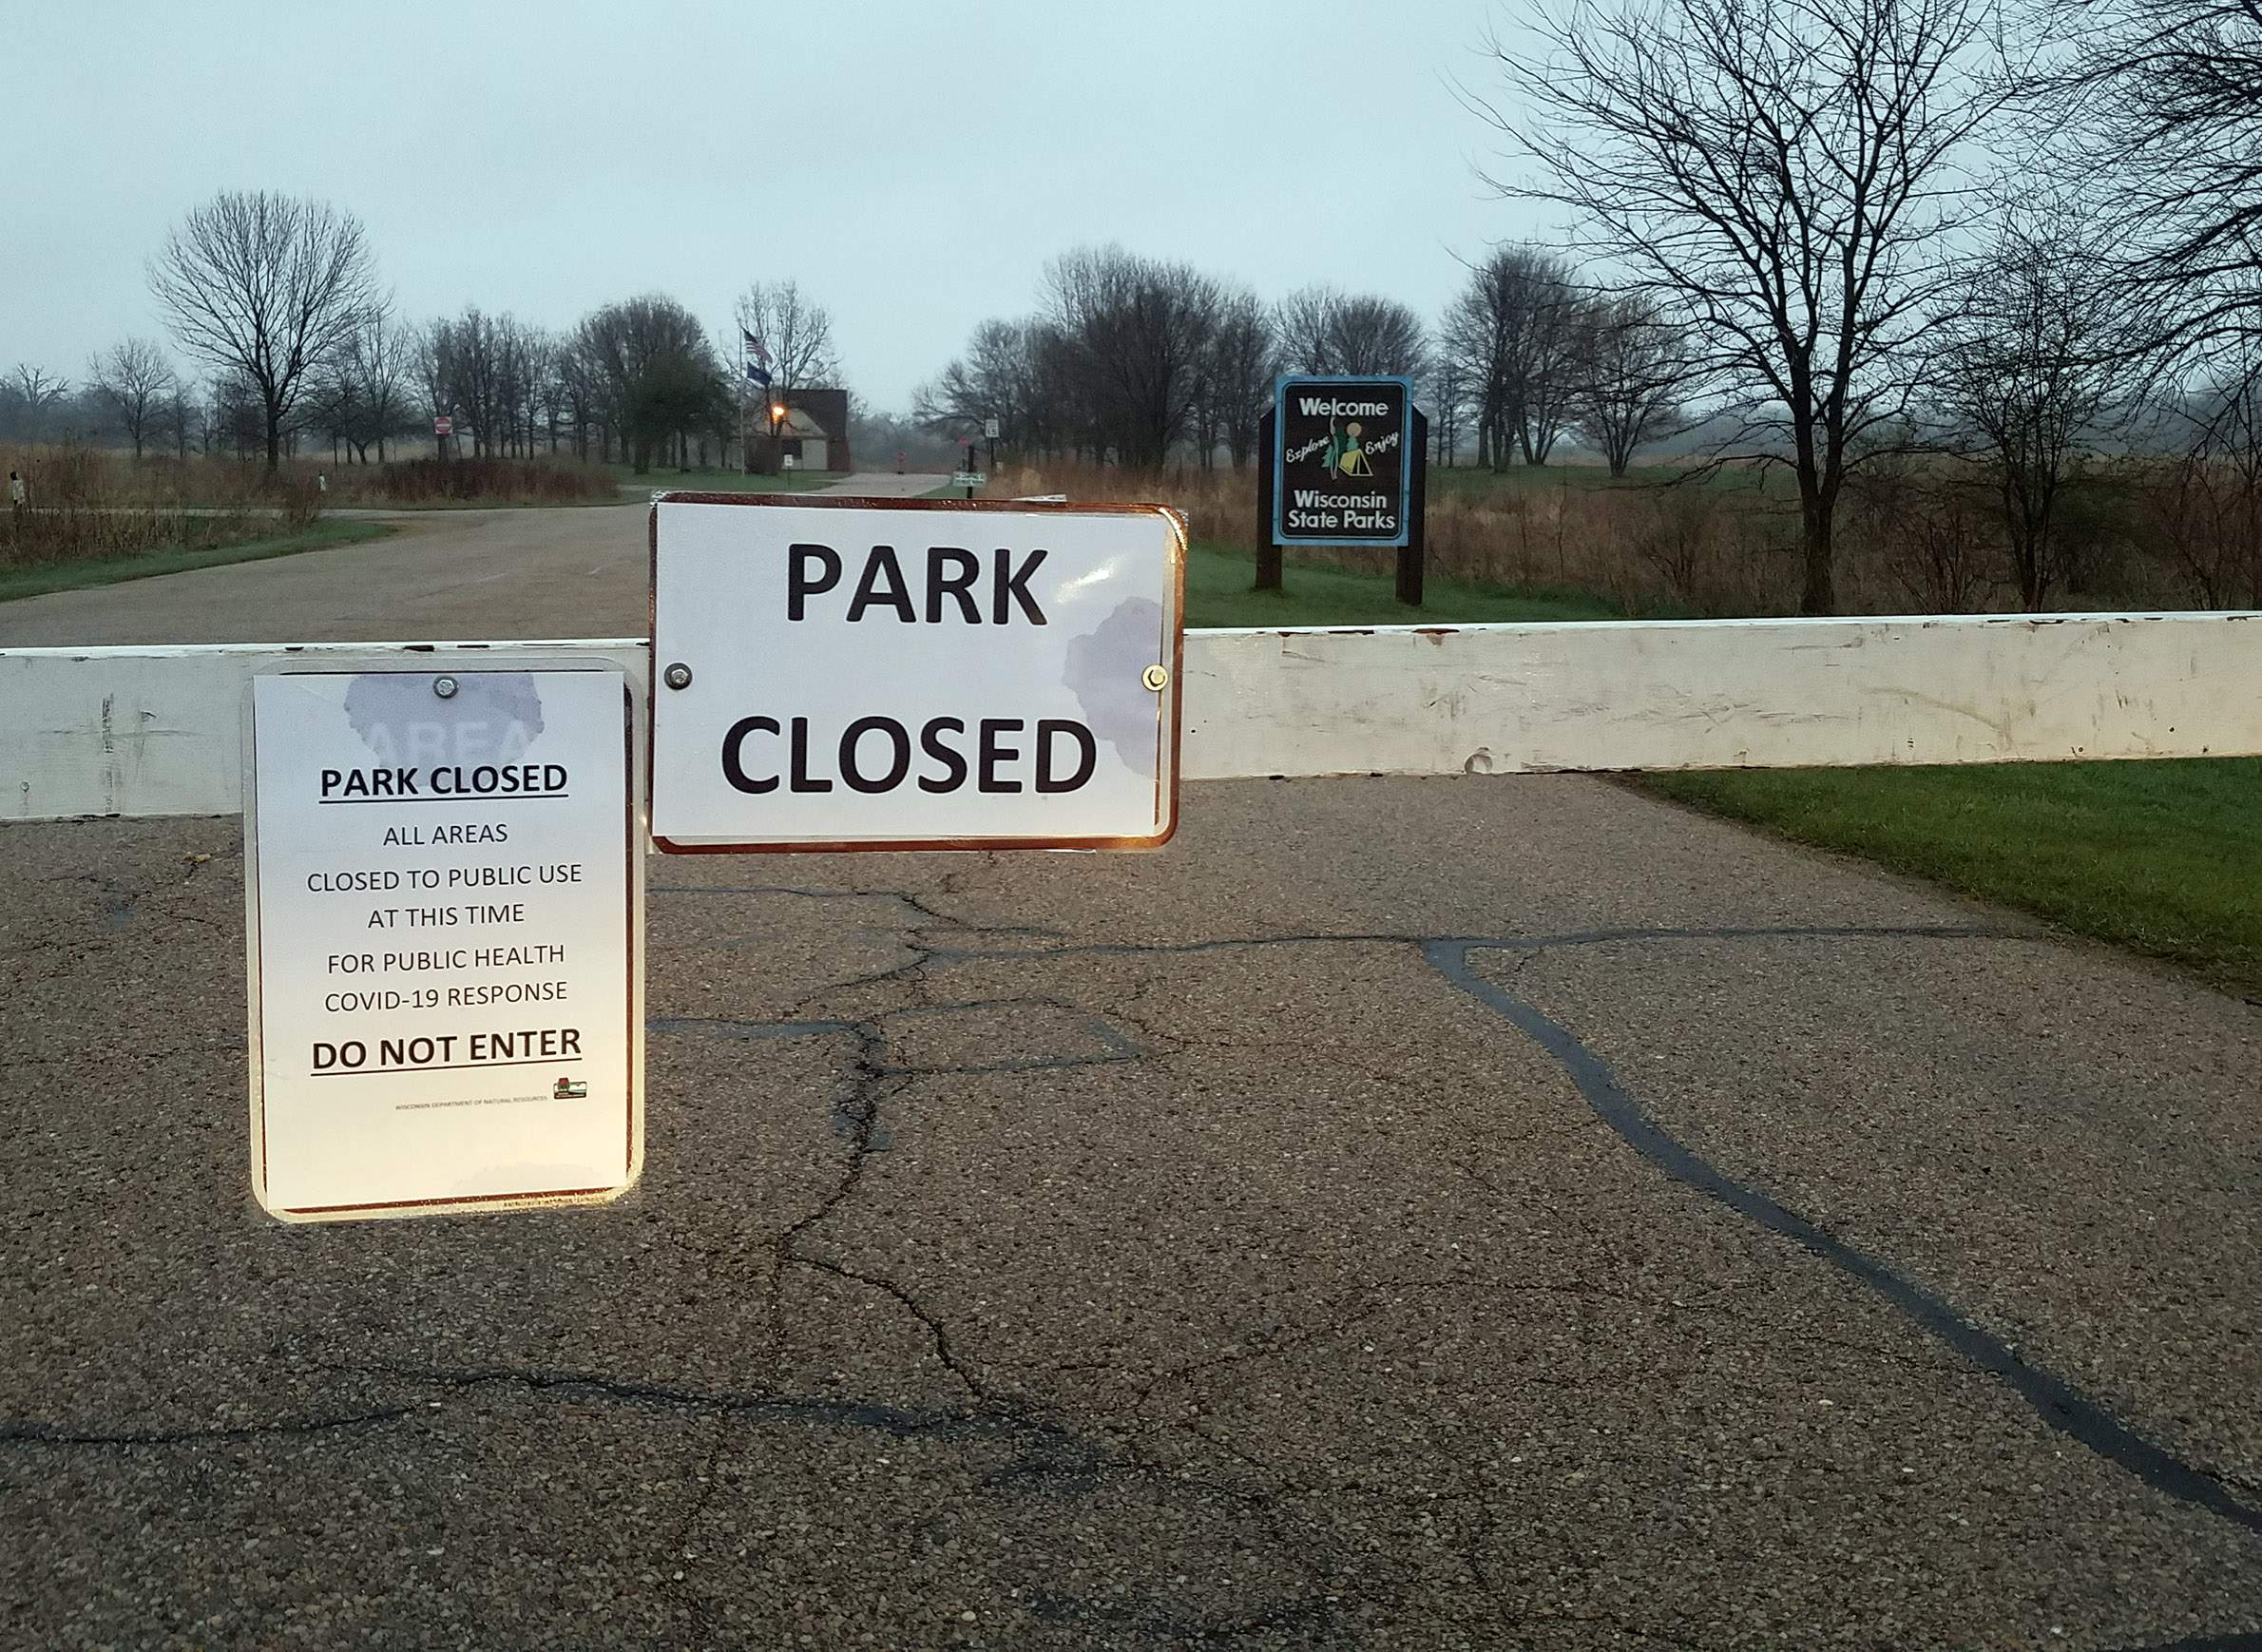 Governor Nelson State Park in Dane County was one of dozens of state parks in Wisconsin ordered closed on April 9, 2020 due to overcrowding and other issues amid the COVID-19 pandemic. Most state parks were ordered to reopen on May 1 with reduced capacity limits, distancing requirements and other changes in place. This photo from April 29 shows a sign at a park entrance noting the closure. Photo by Kristian Knutsen/WisContext.